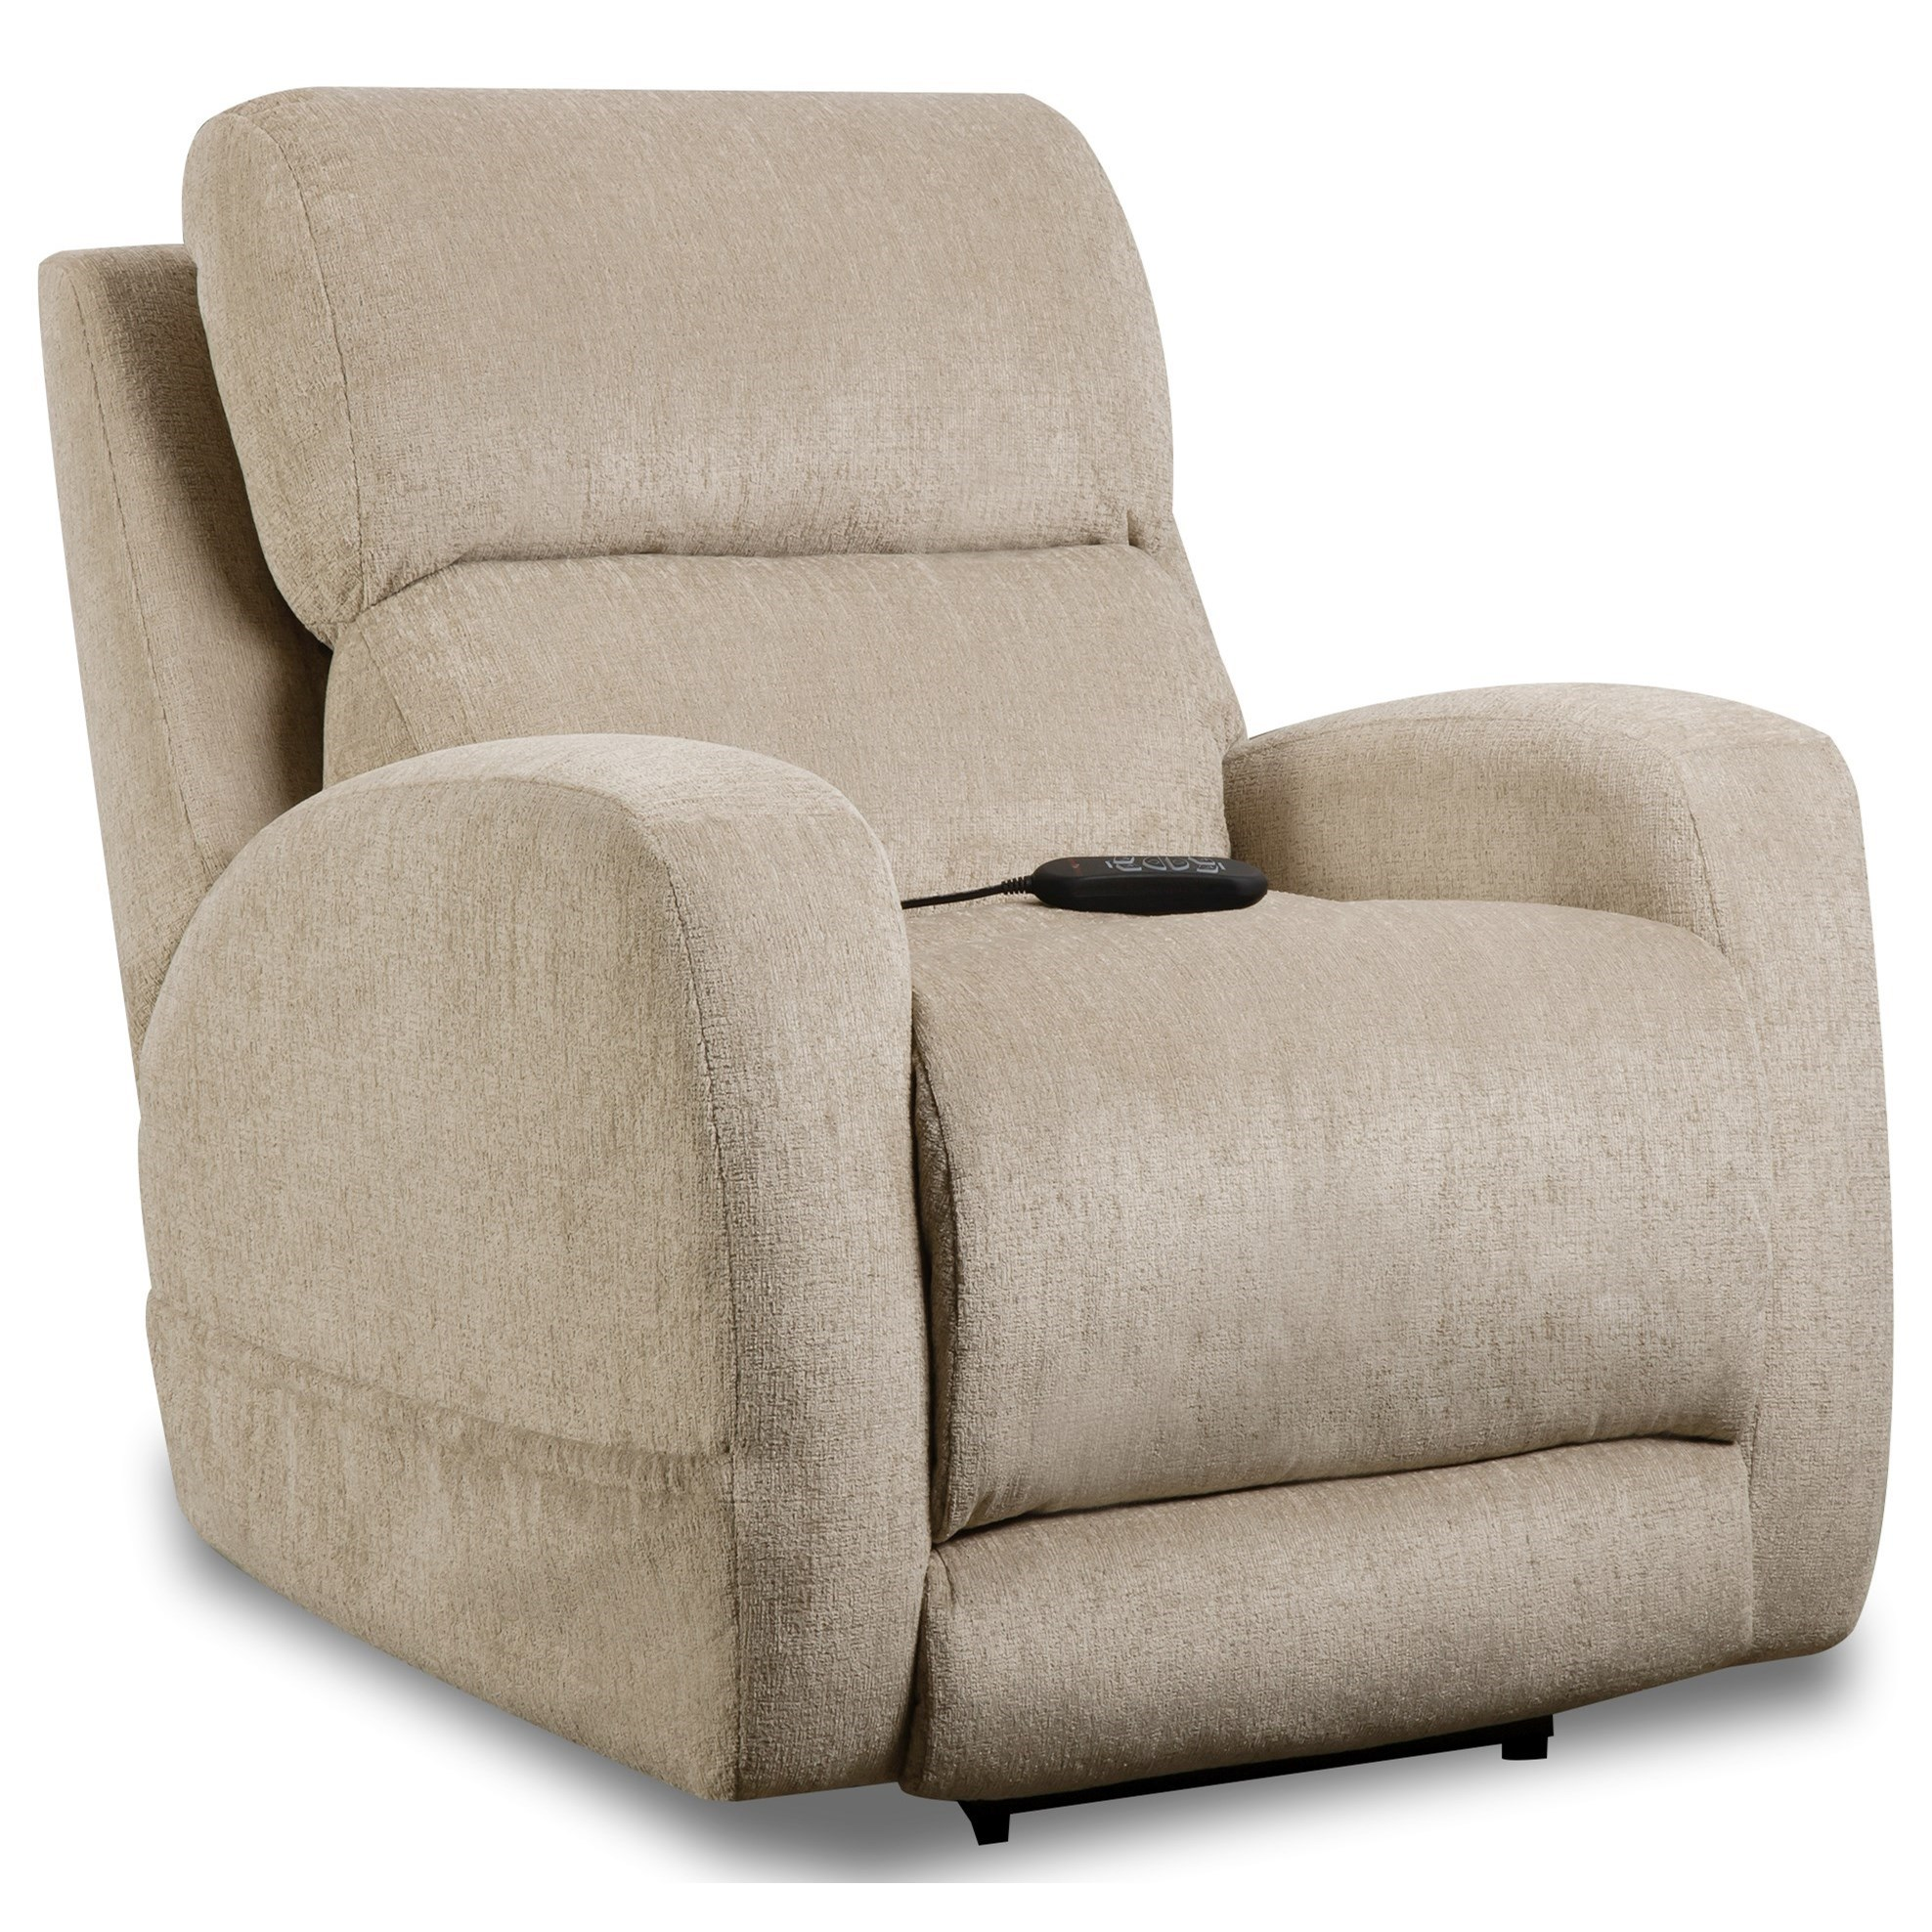 Sterling Power Wall-Saver Recliner by HomeStretch at Wilcox Furniture